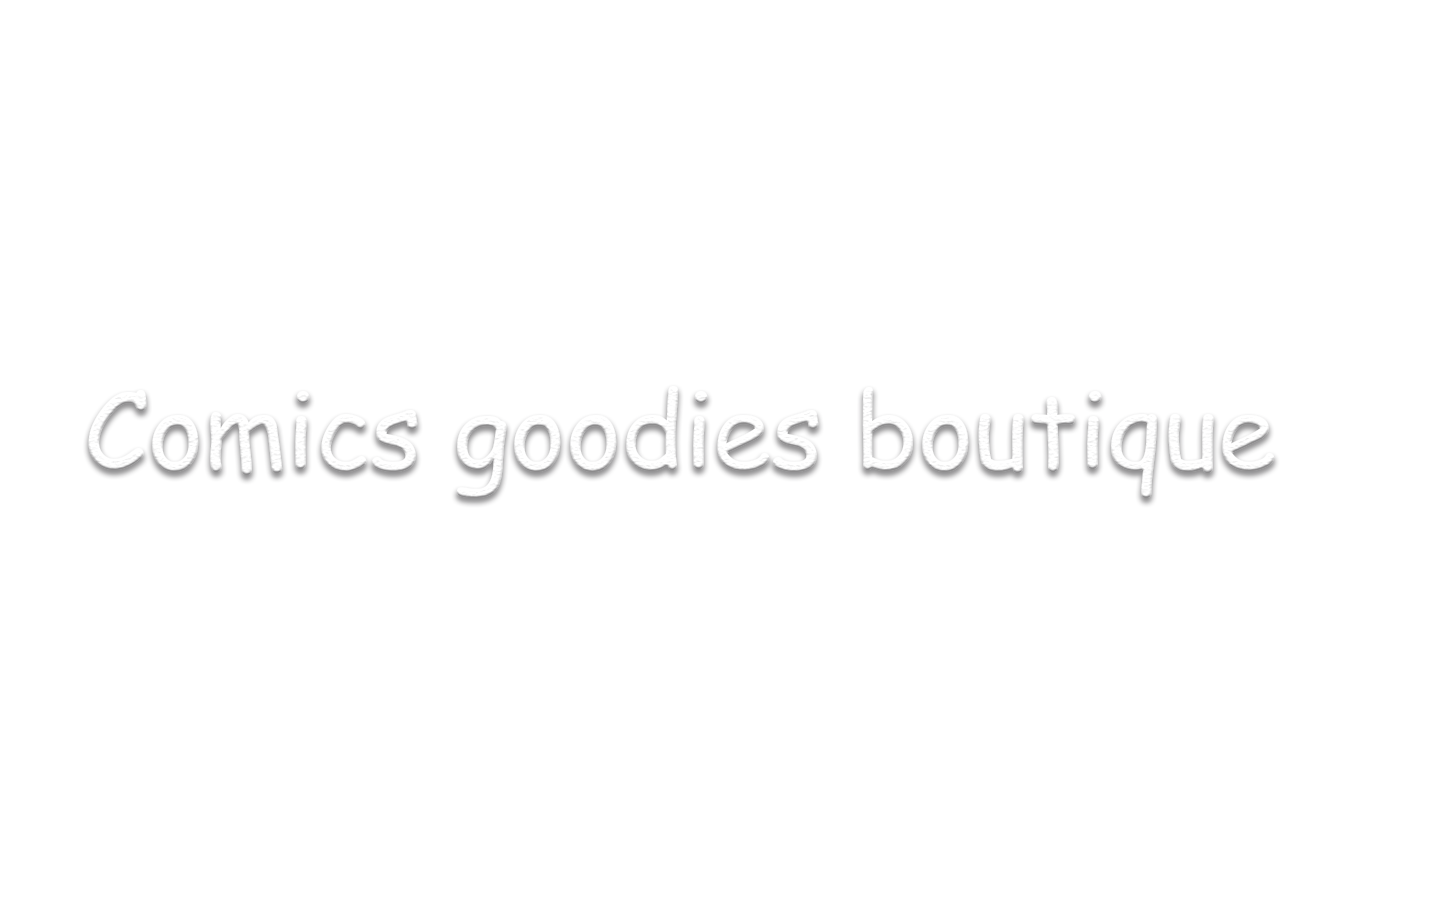 Comics Goodies Boutique